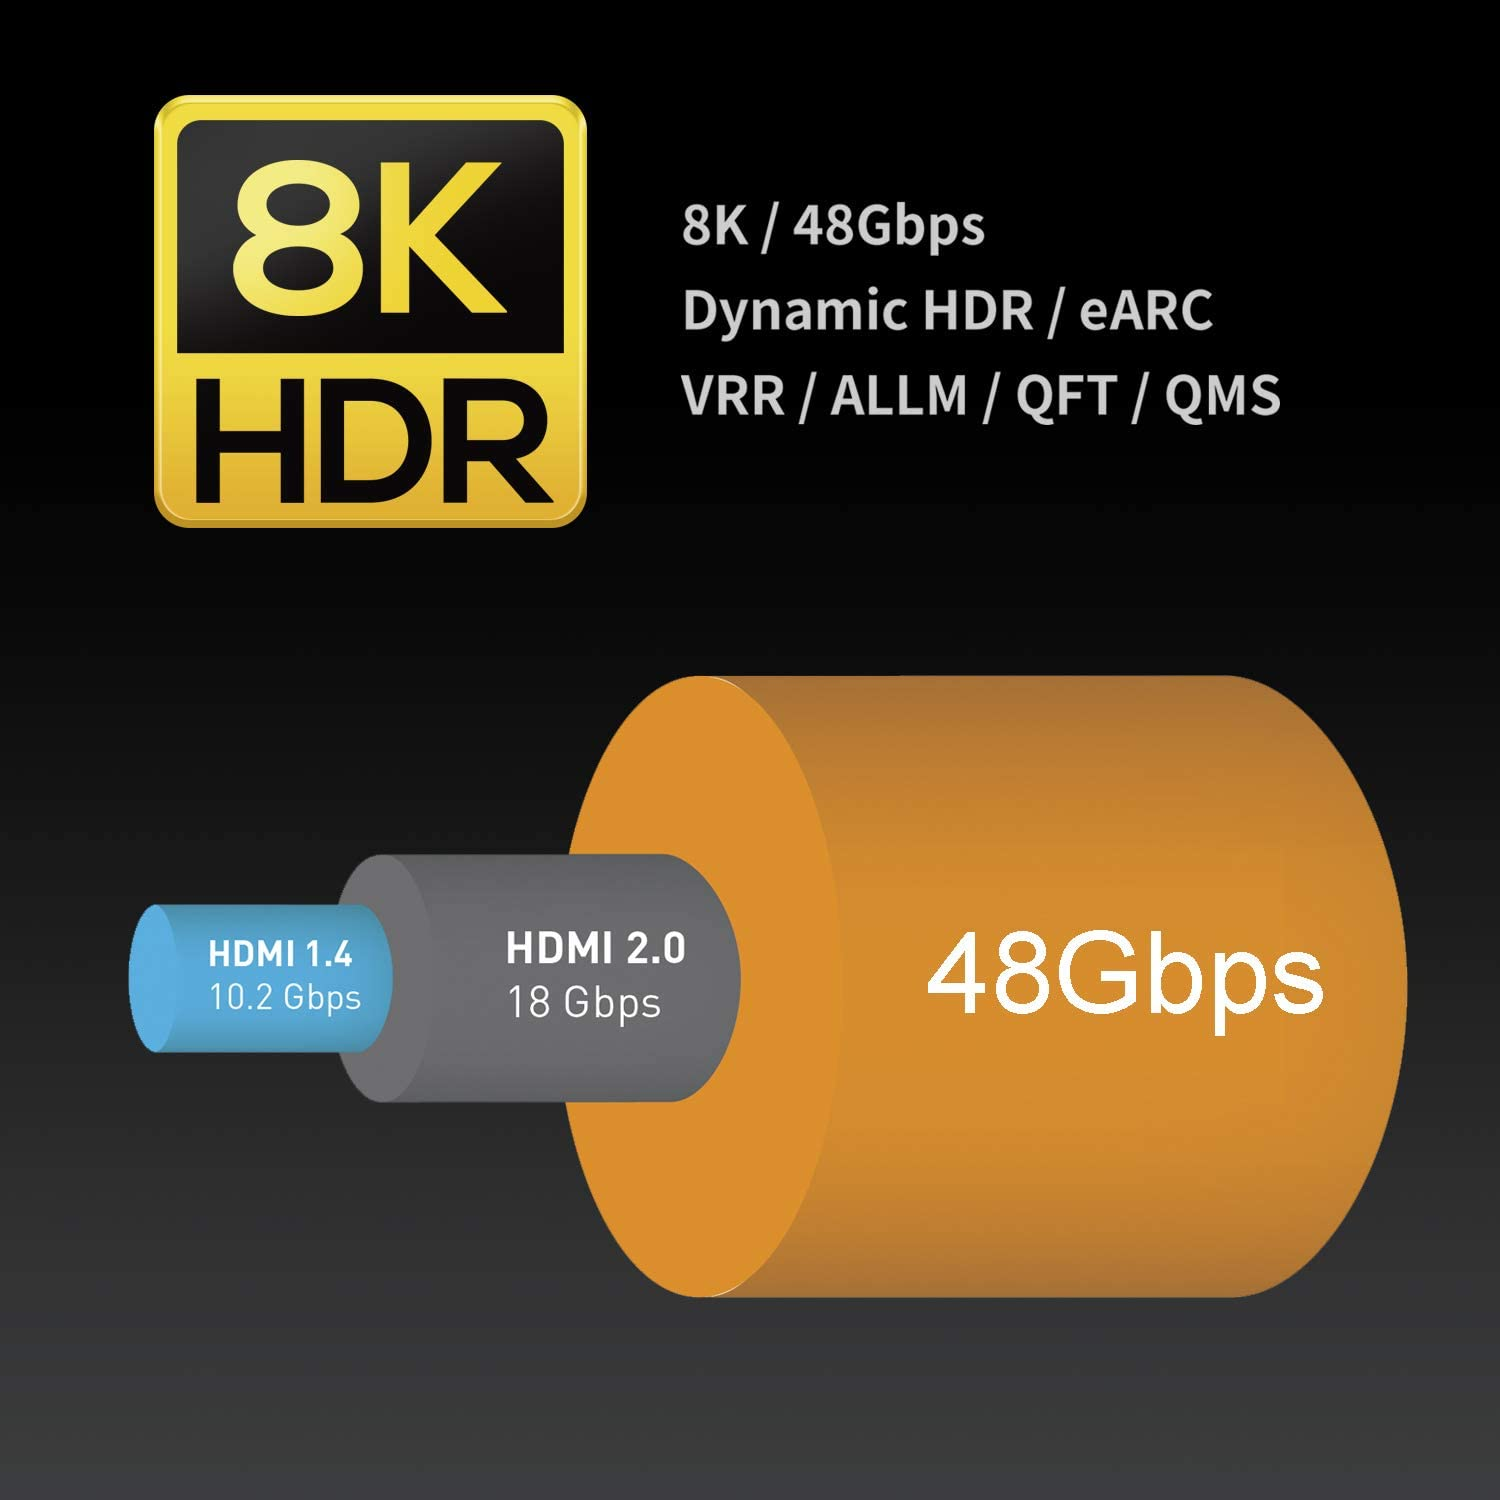 Zeskit 8K Ultra HD High Speed 48Gpbs HDMI Cable 6.5ft, 8K60 4K120 144Hz eARC HDR10 4:4:4 HDCP 2.2 & 2.3 Compatible with Dolby Vision Xbox PS4 PS5 Apple TV 4K Roku Fire TV Switch Vizio Sony LG Samsung: Industrial & Scientific